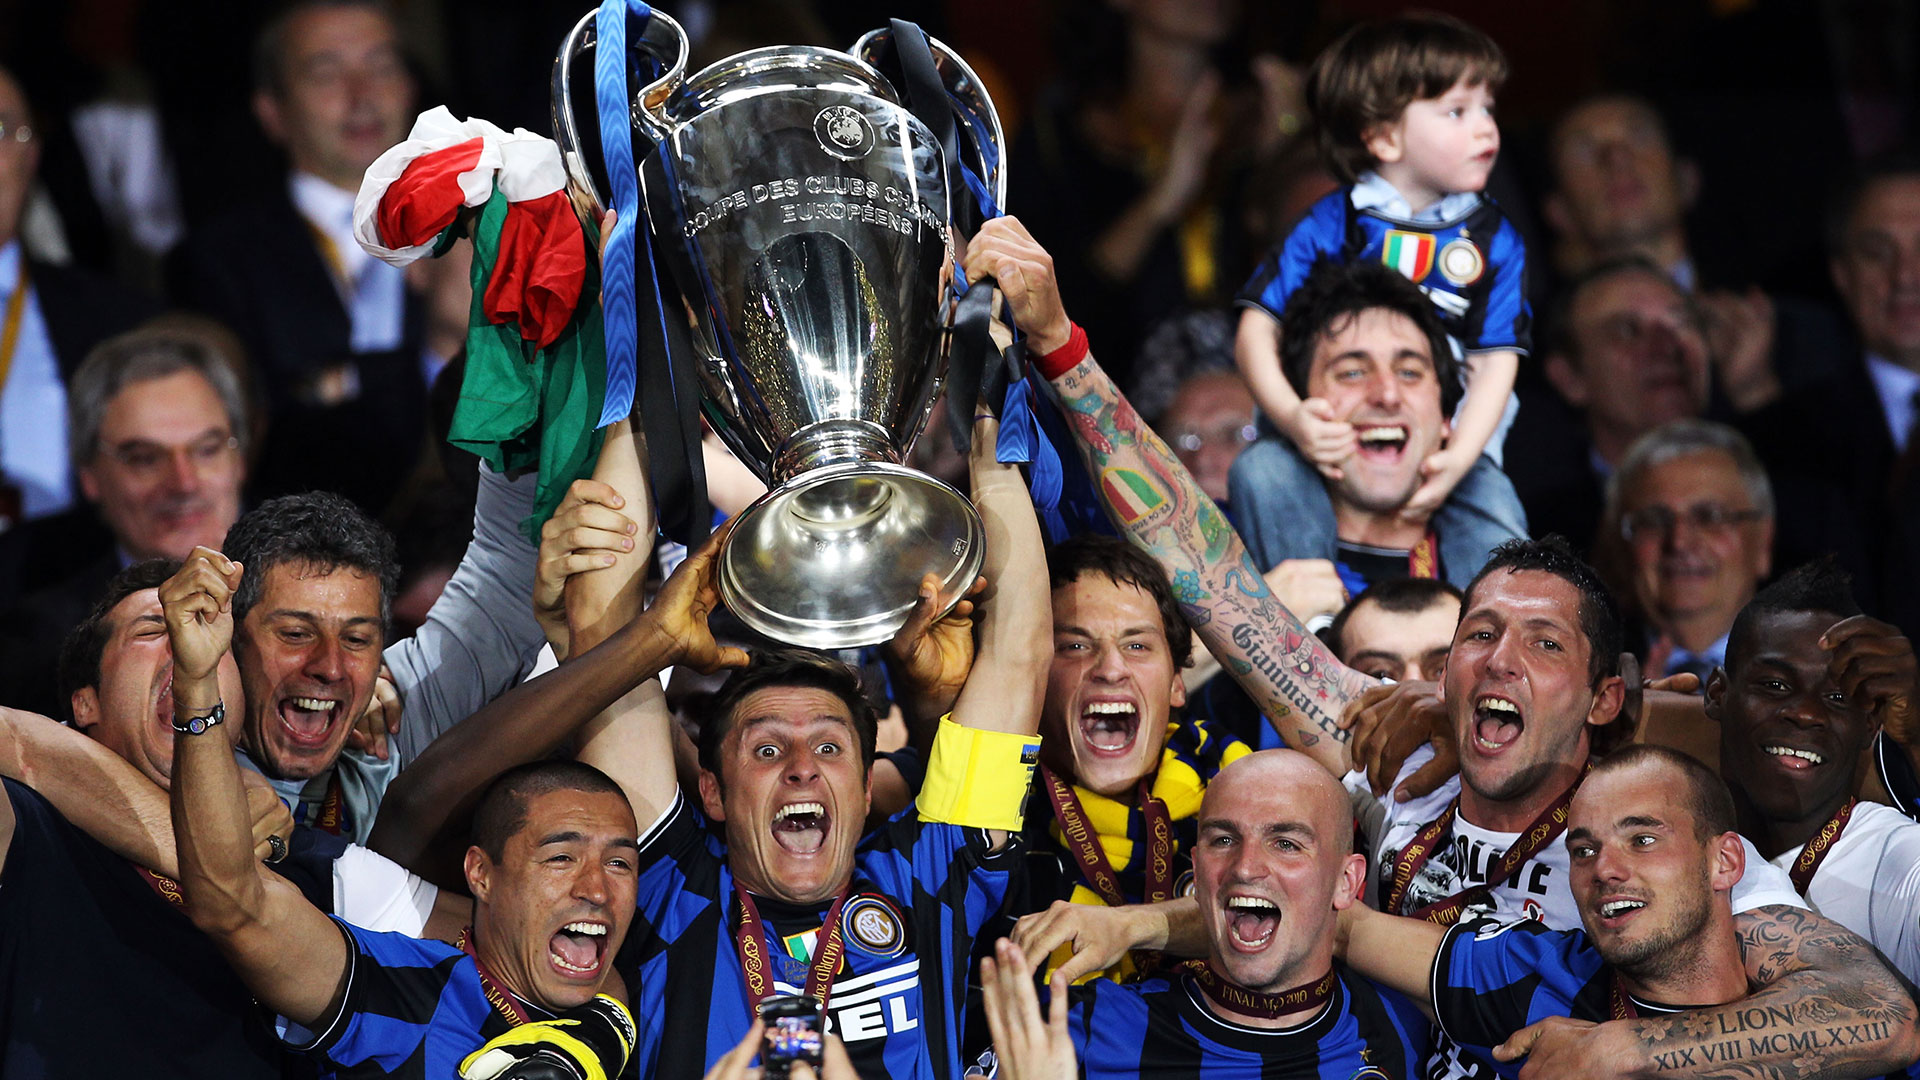 Inter Champions League 2010